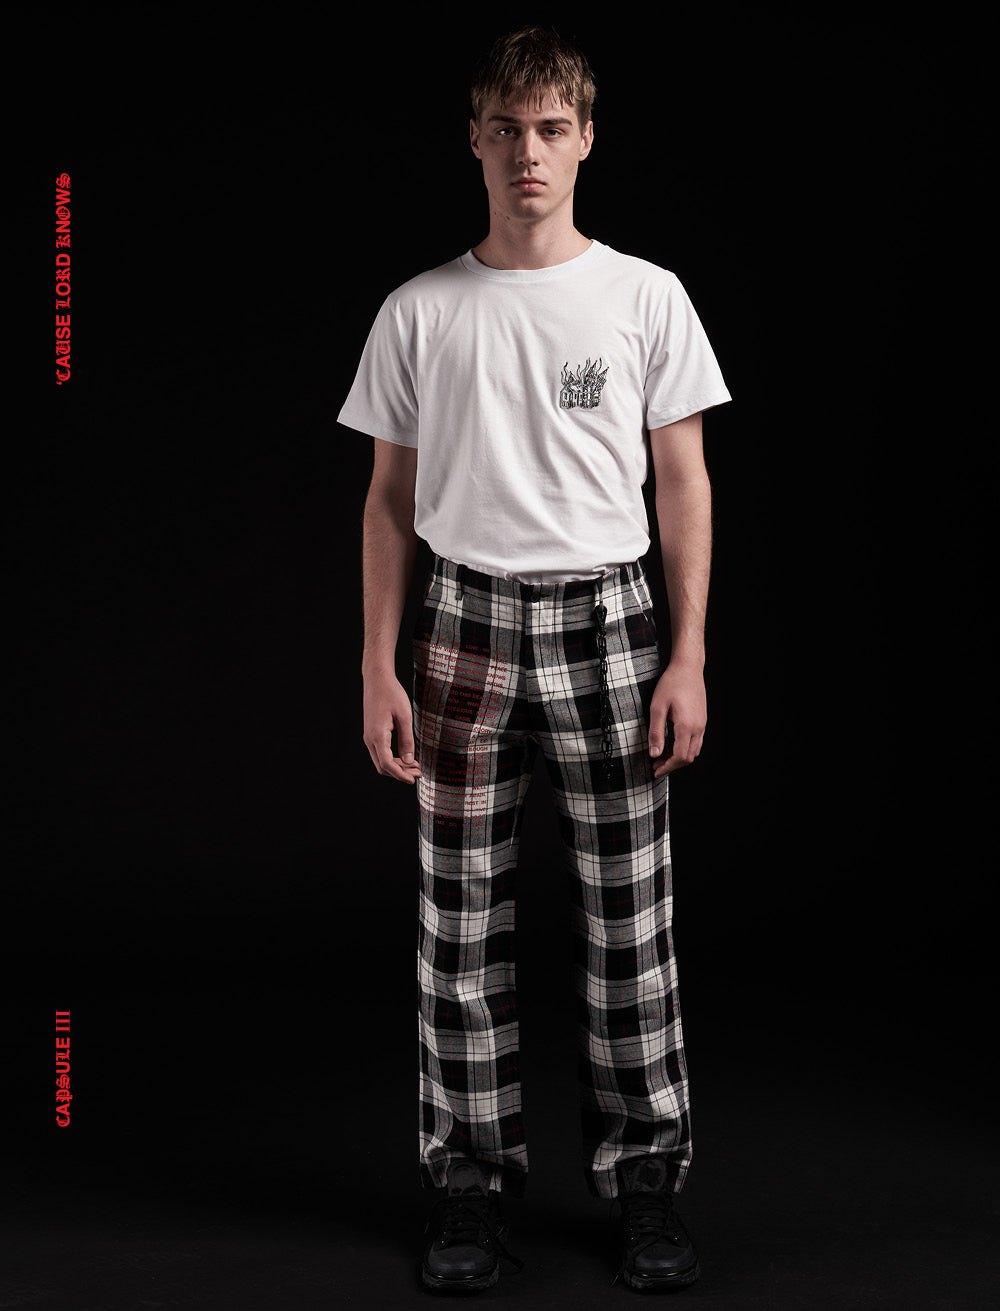 GREY CHECK FLANNEL TROUSERS // RED MANIFEST